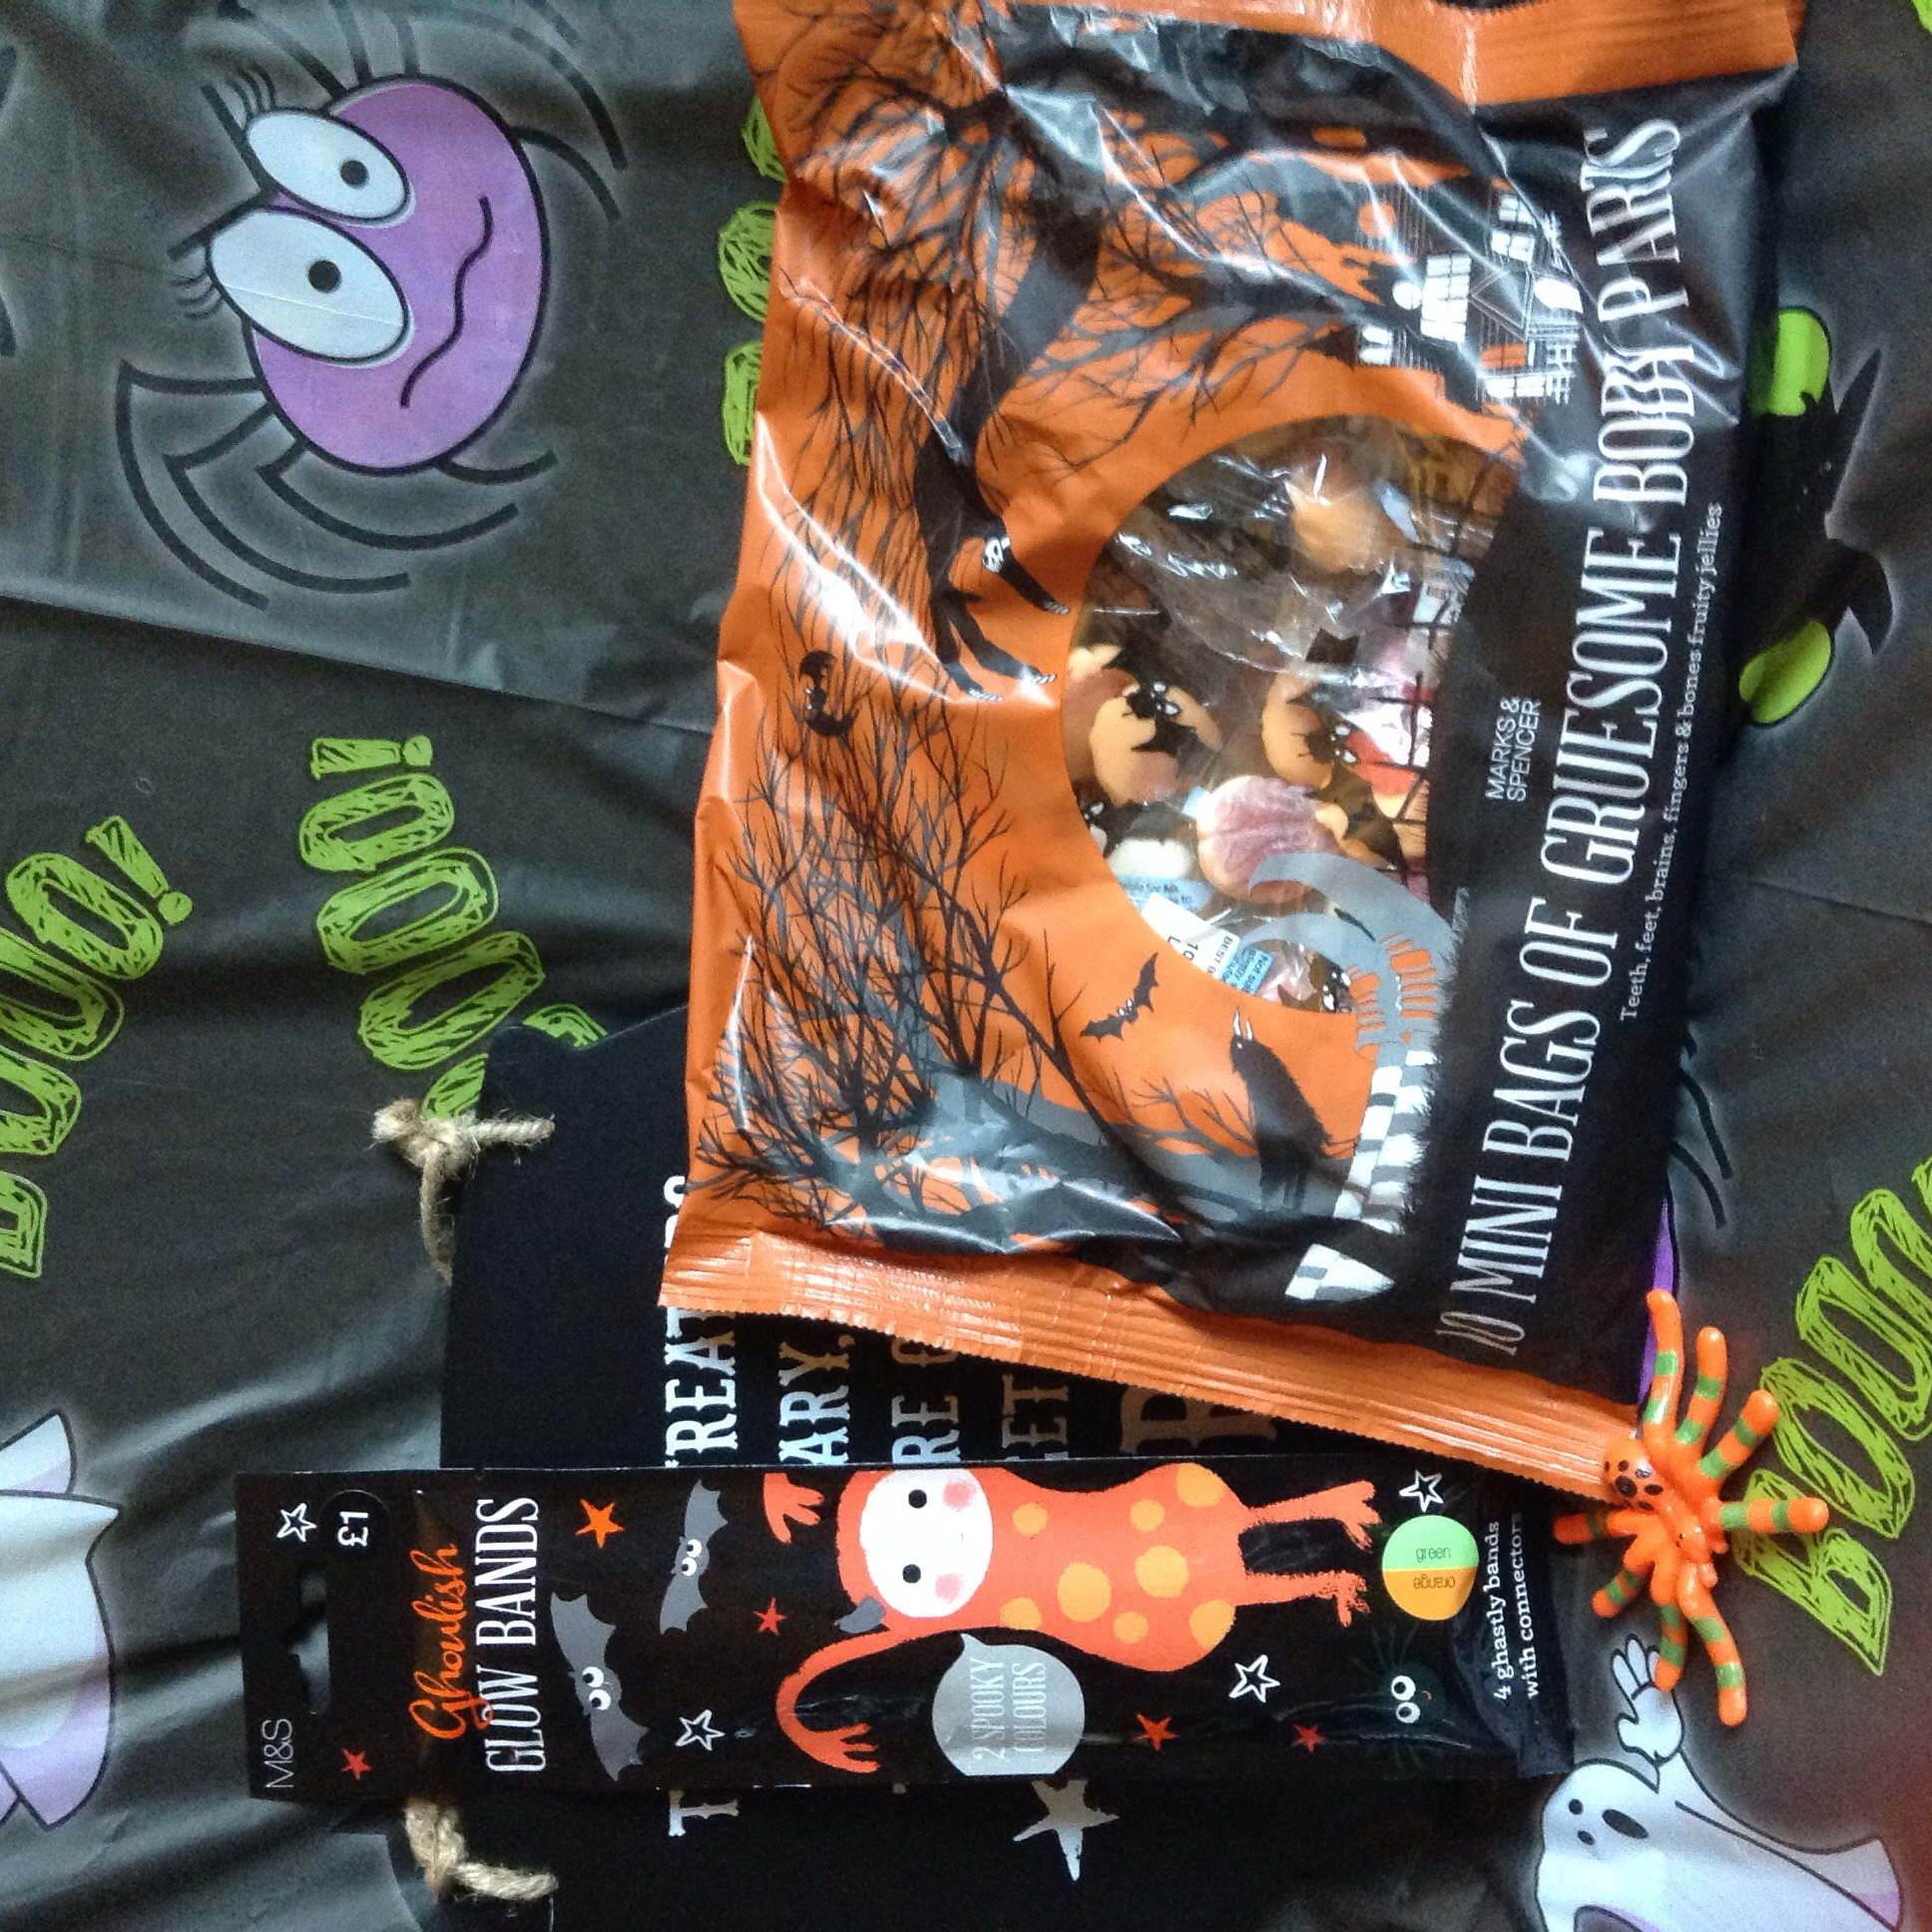 for when the trick or treaters come calling, 10 mini bags £3.00 - going trick of treating yourself? Glowstick pack of two £1